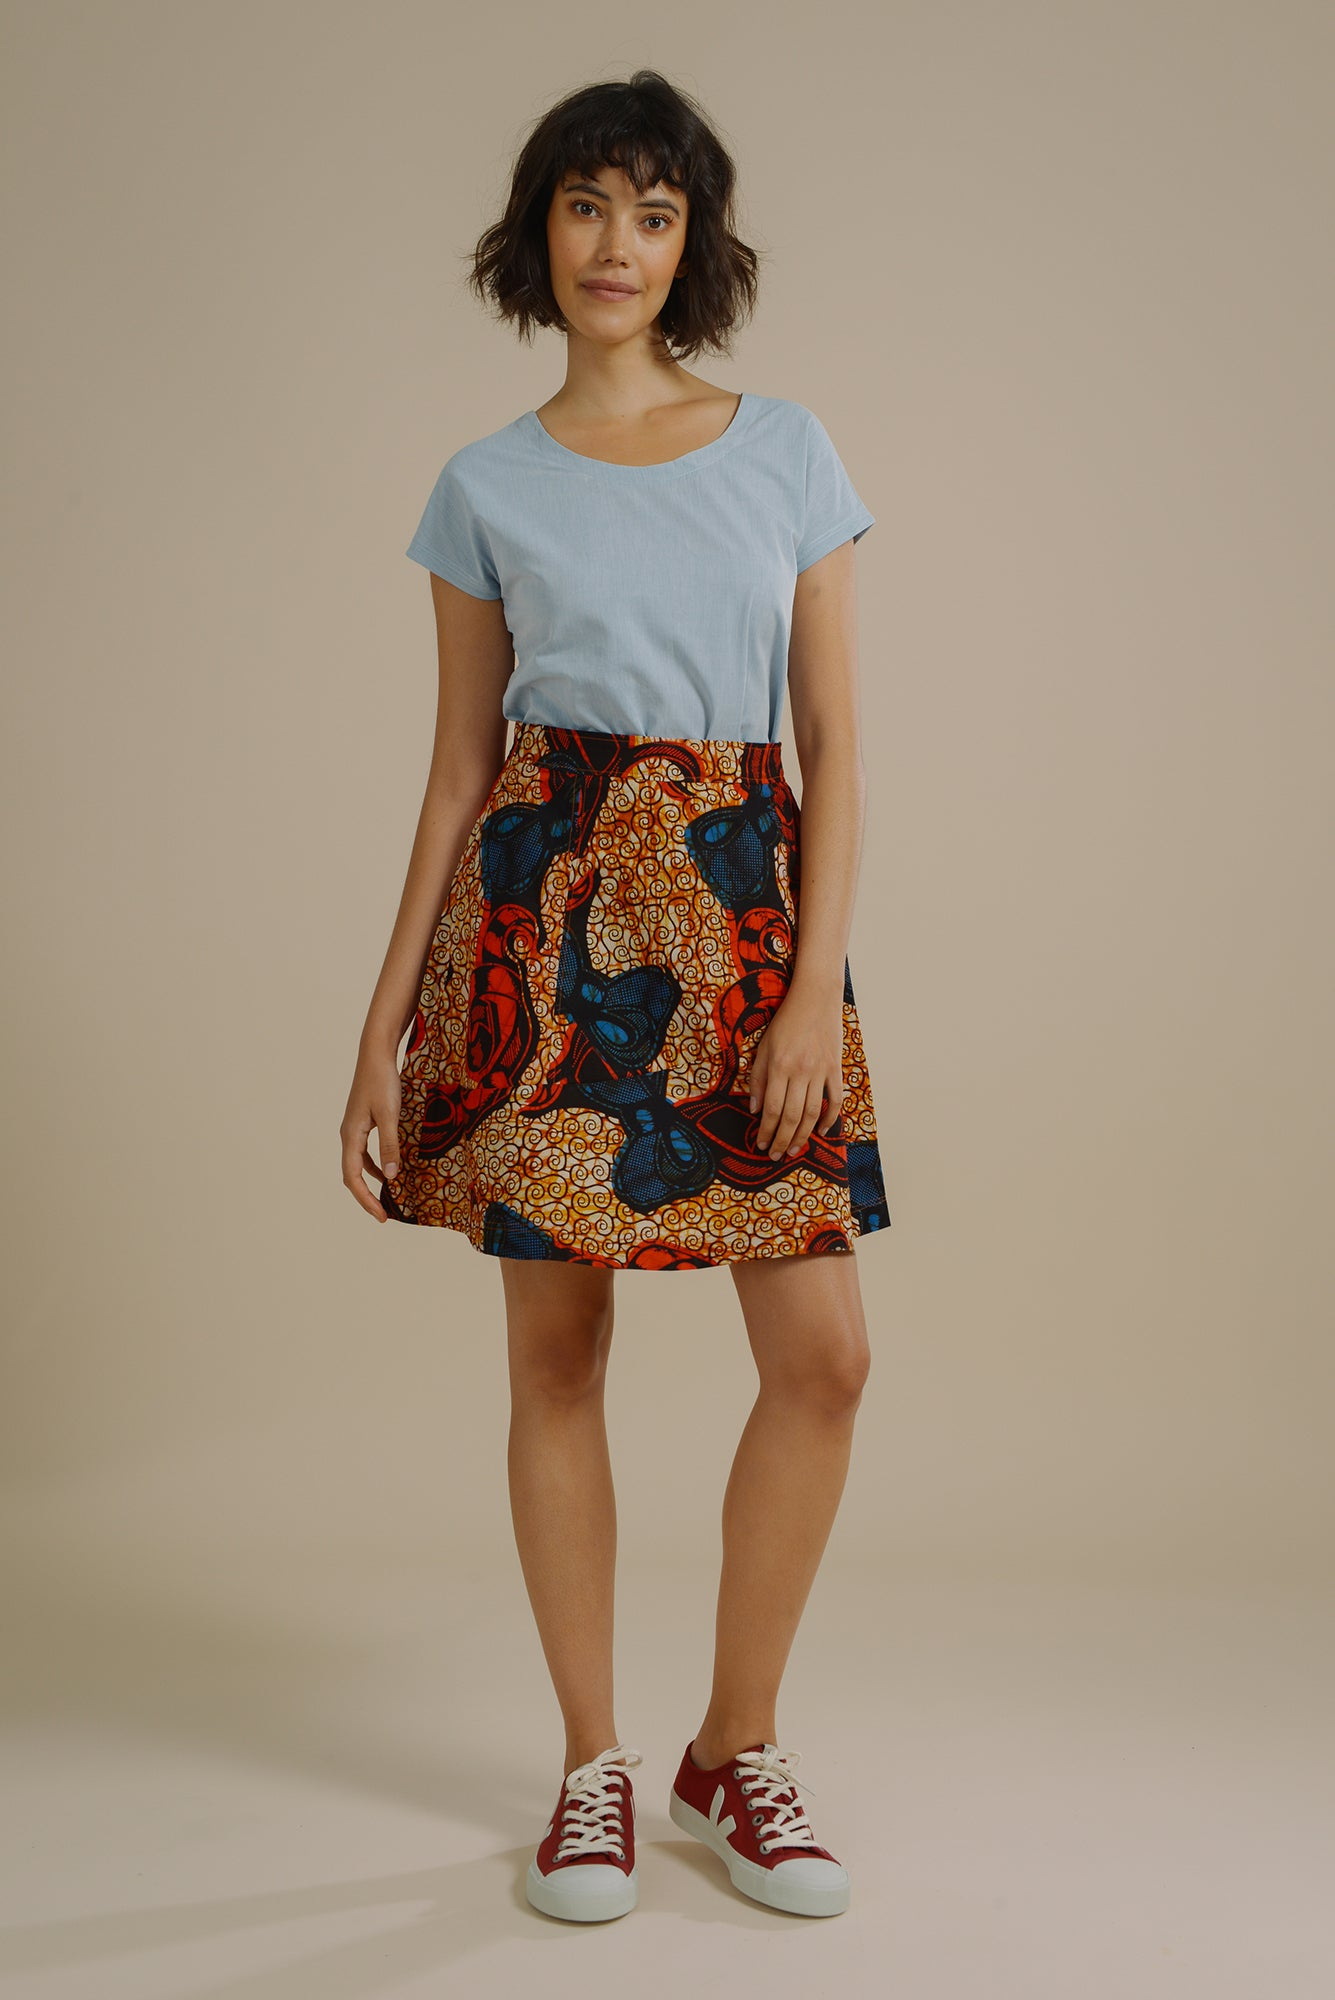 9d0df75bf6 Polly Flare Panelled Skirt in Red and Blue Bow - Mayamiko Sustainable  Fashion ...